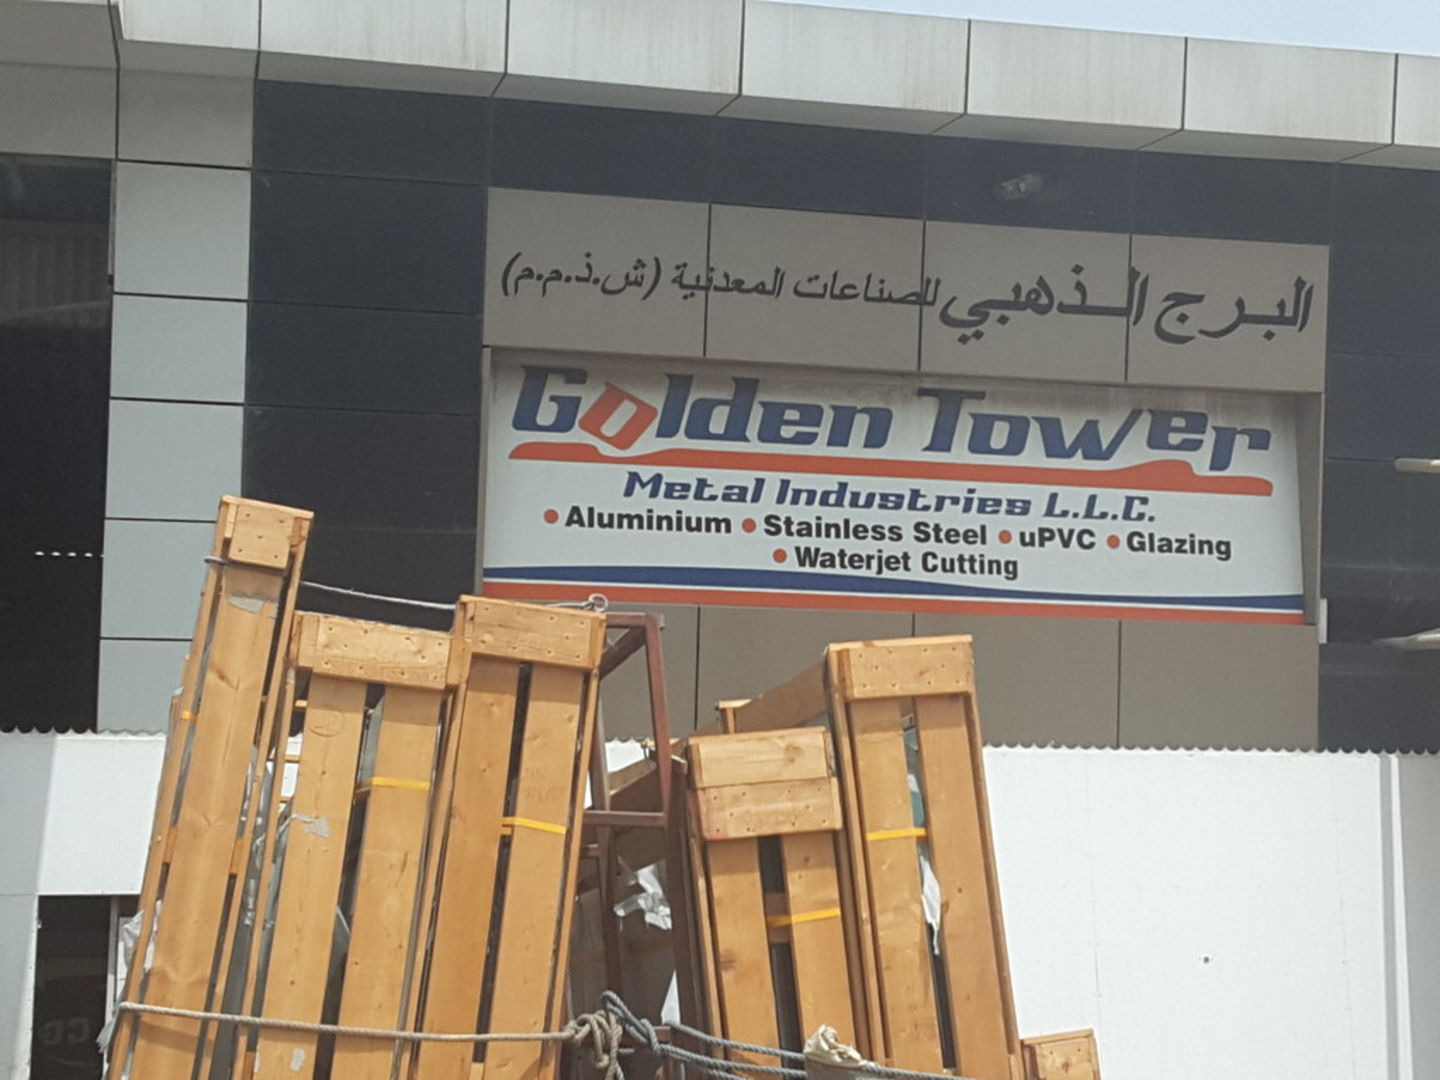 HiDubai-business-golden-tower-metal-industry-construction-heavy-industries-chemical-metal-companies-ras-al-khor-industrial-2-dubai-2